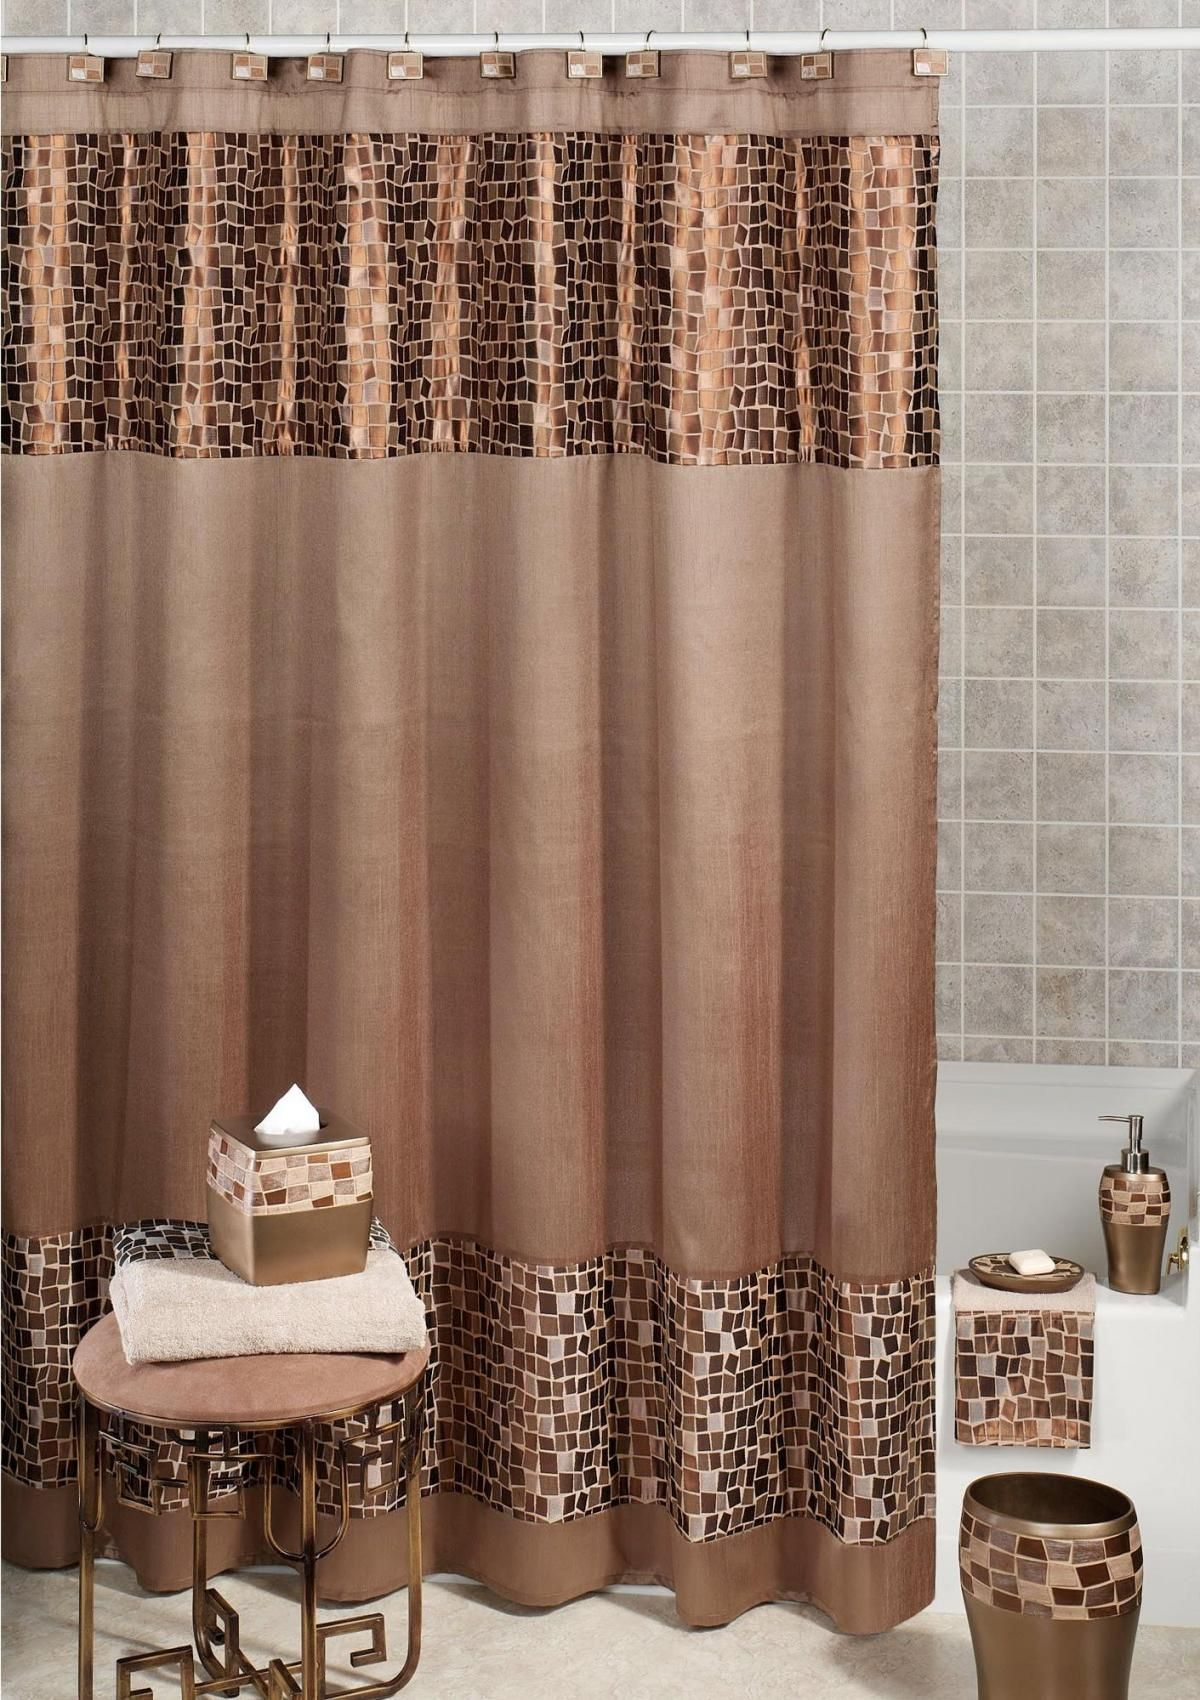 Remarkable Fabric Shower Curtains For Elegant Bathroom Drawhome Com Elegant Shower Curtains Brown Shower Curtain Fancy Shower Curtains